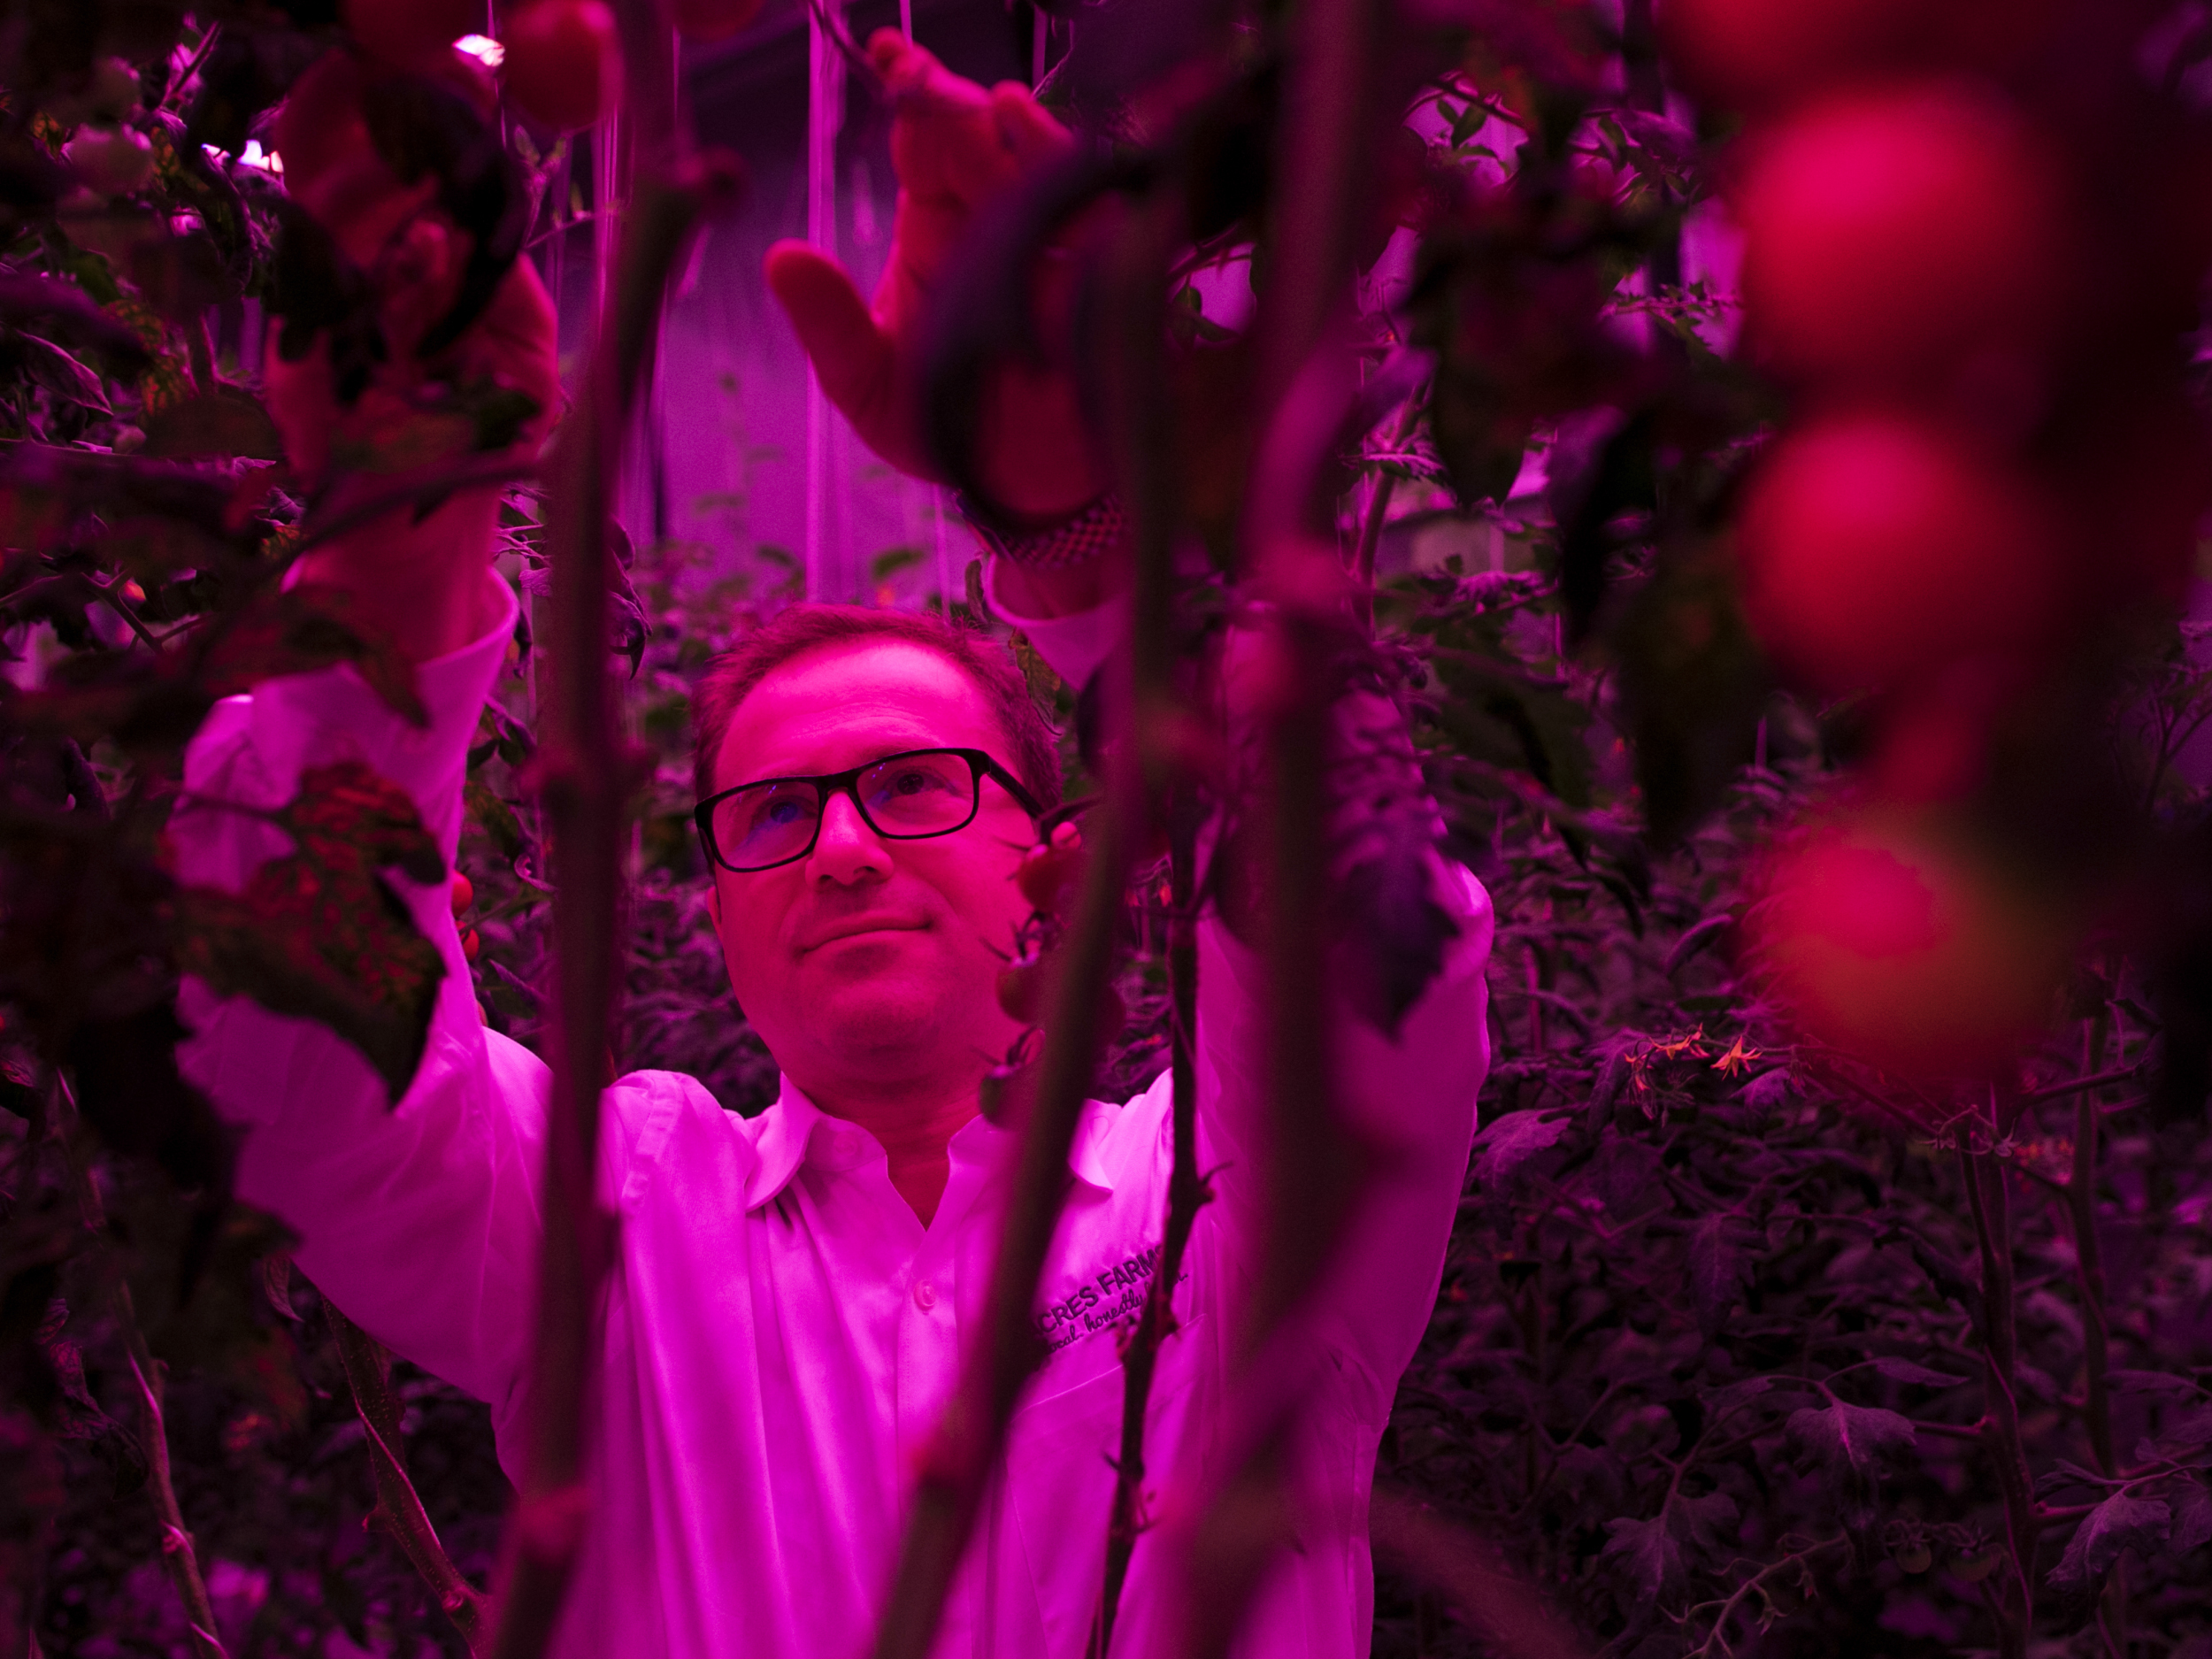 High-tech farmers are using LED lights in ways that seem to